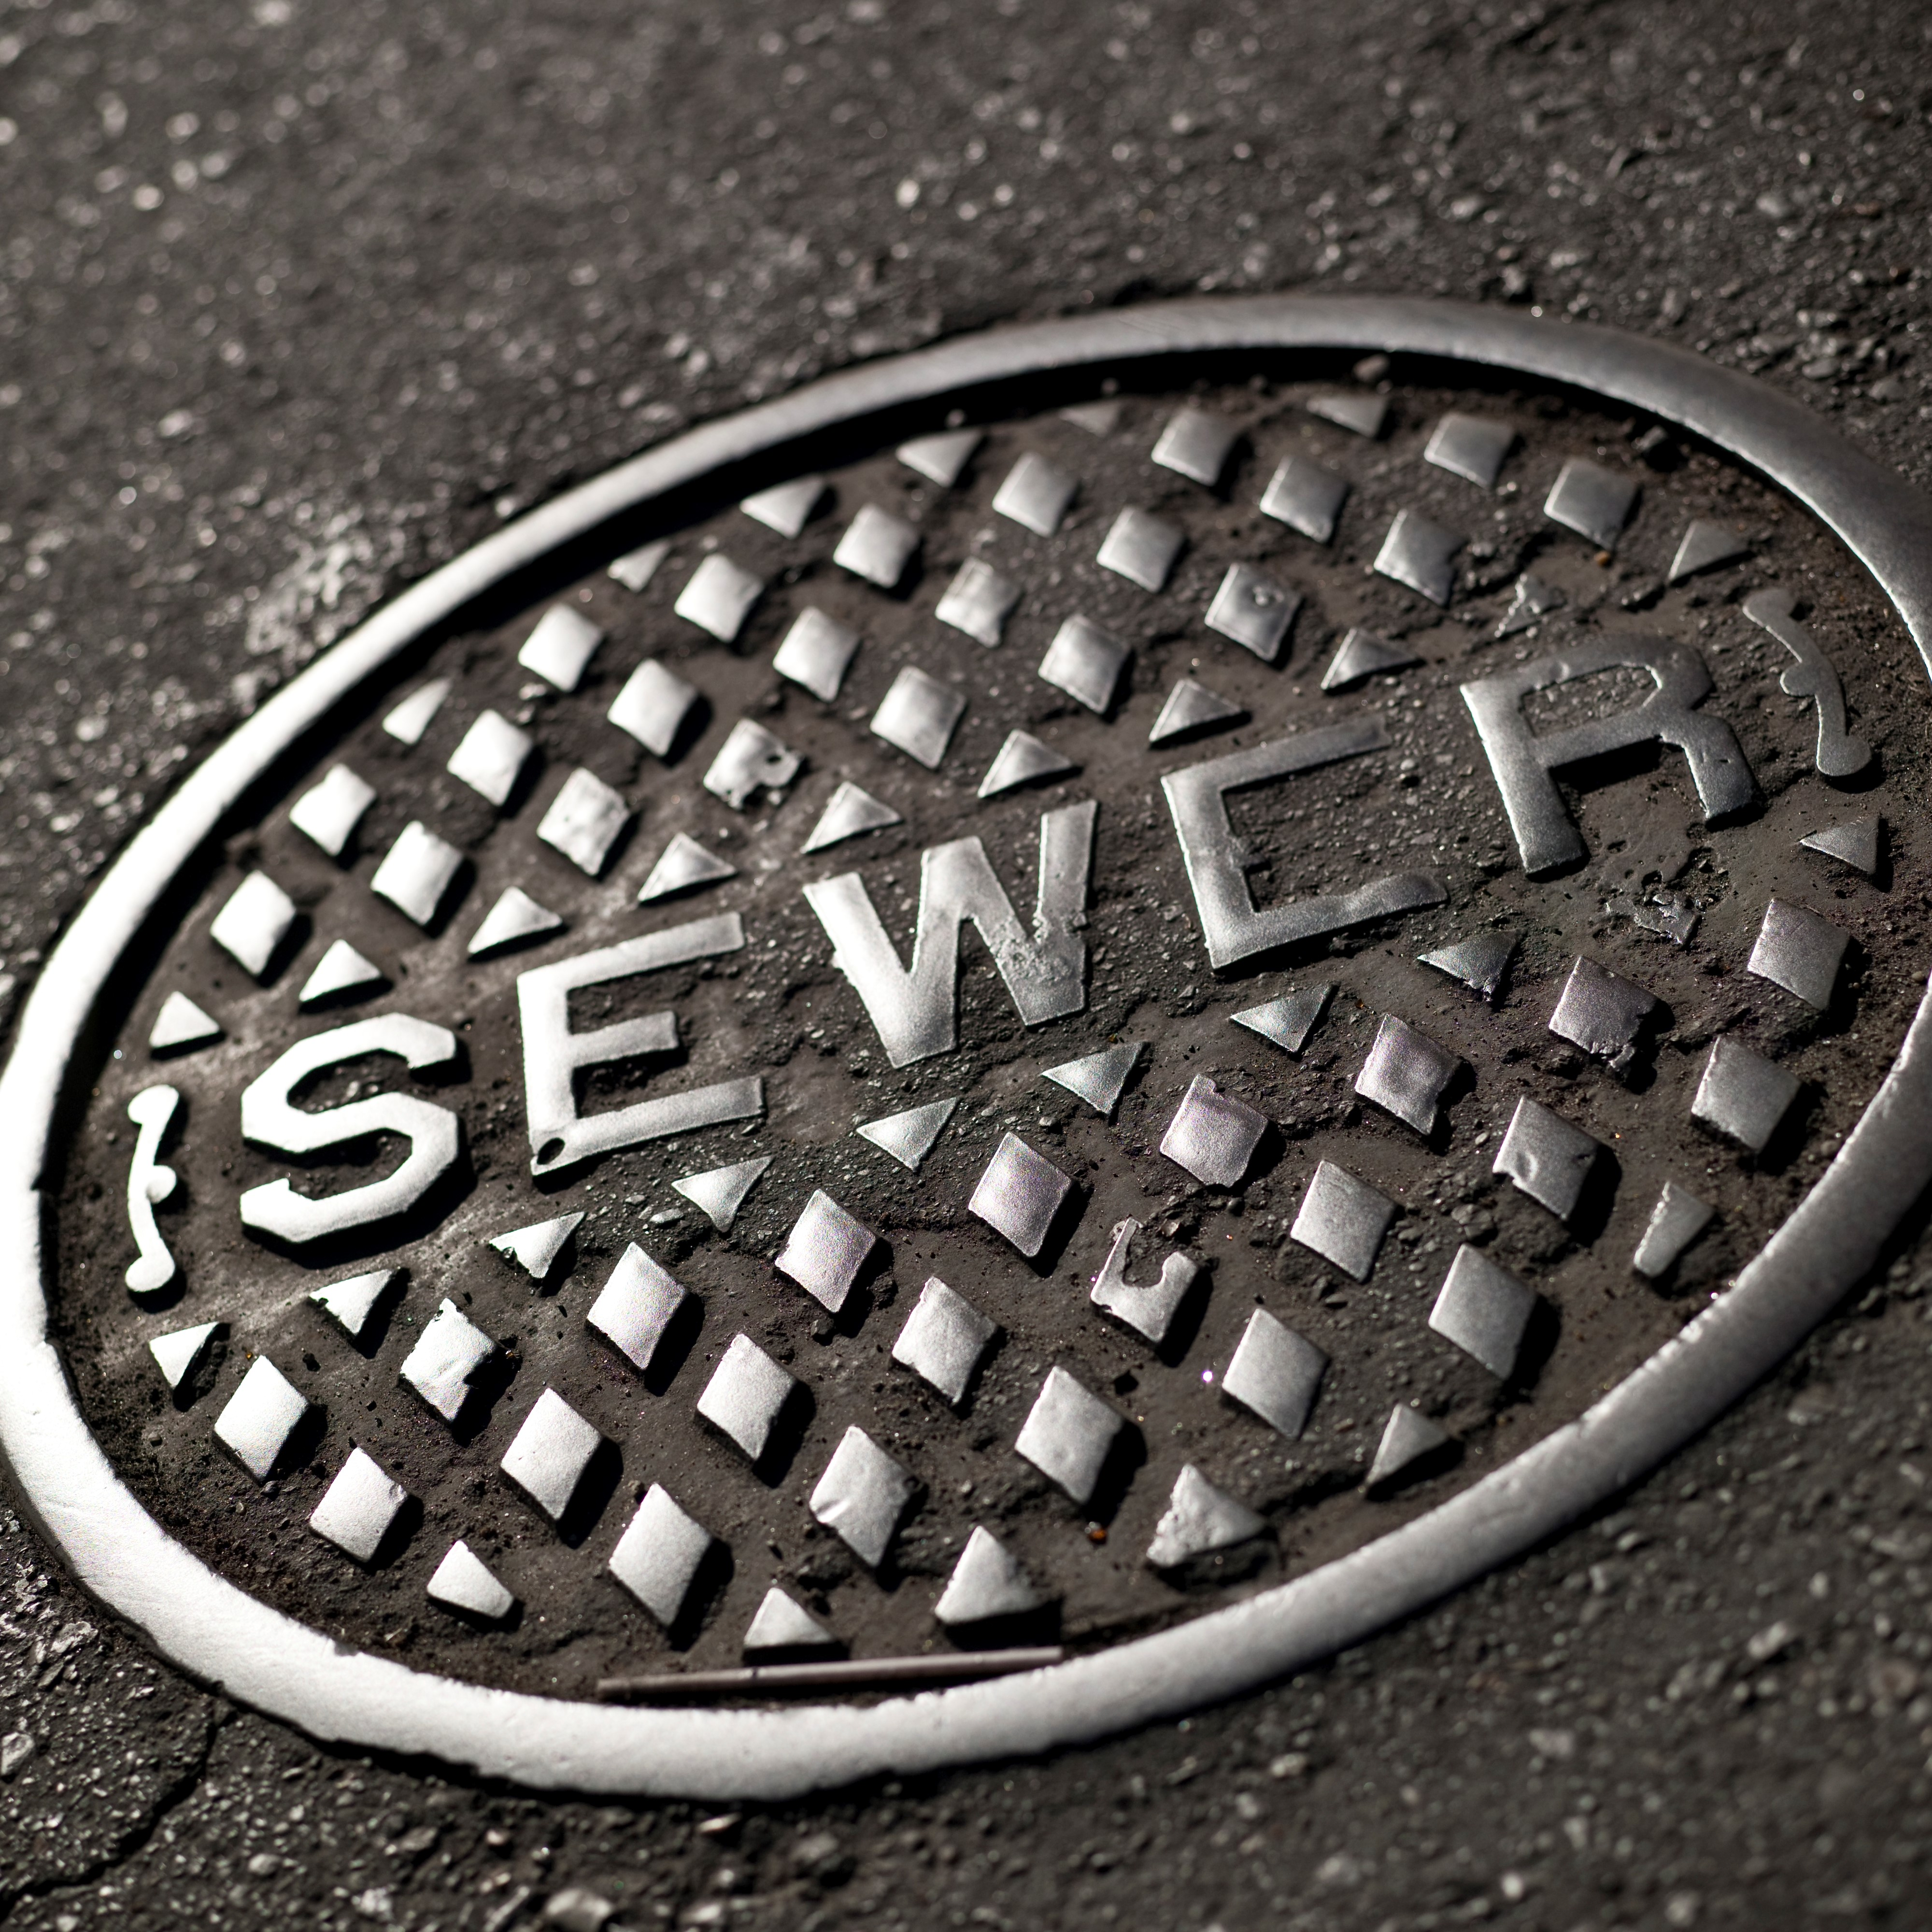 Sewer flow monitoring